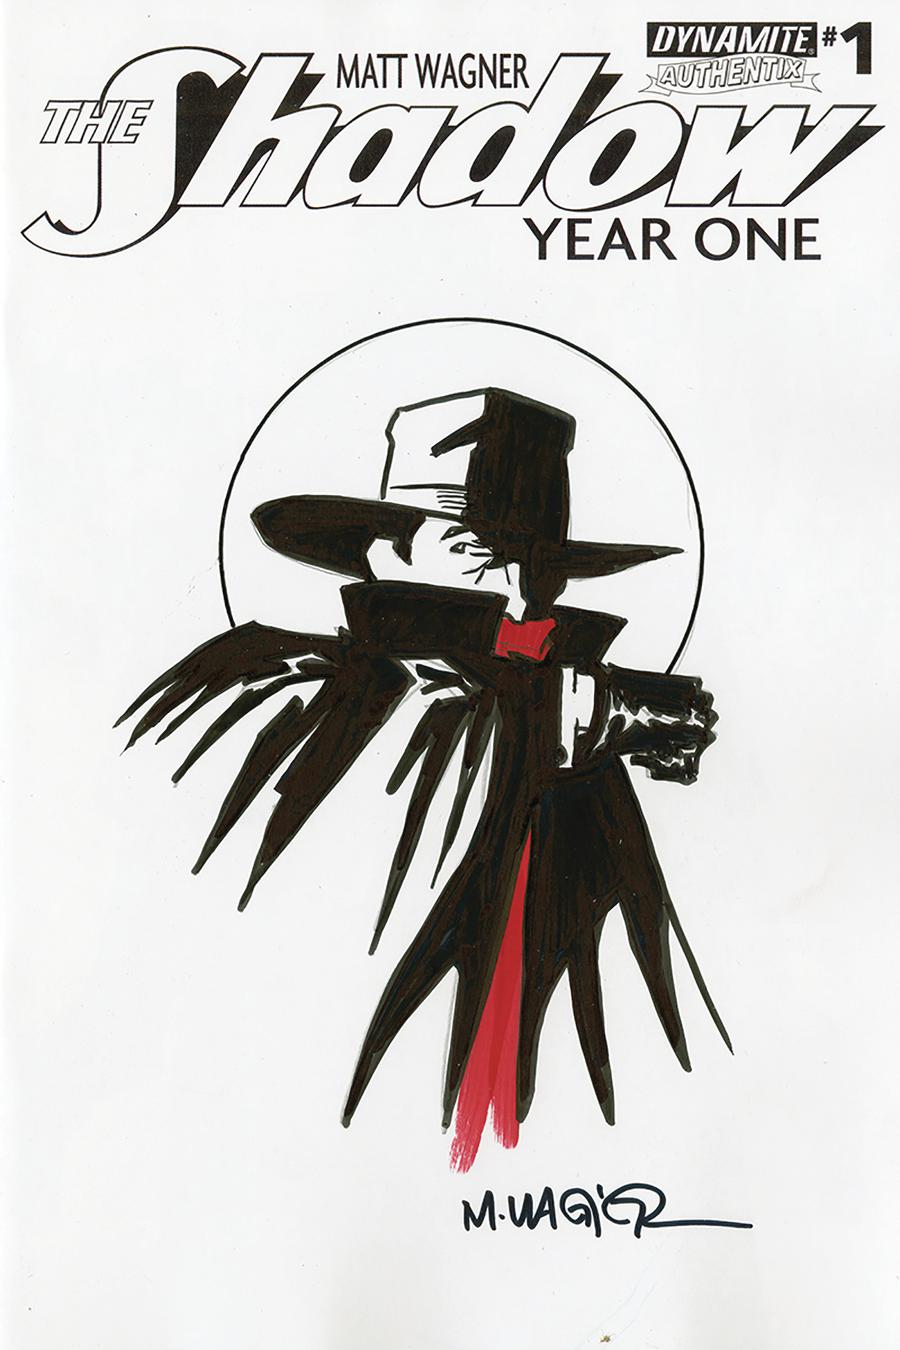 Shadow Year One #1 Cover P Remarked By Matt Wagner